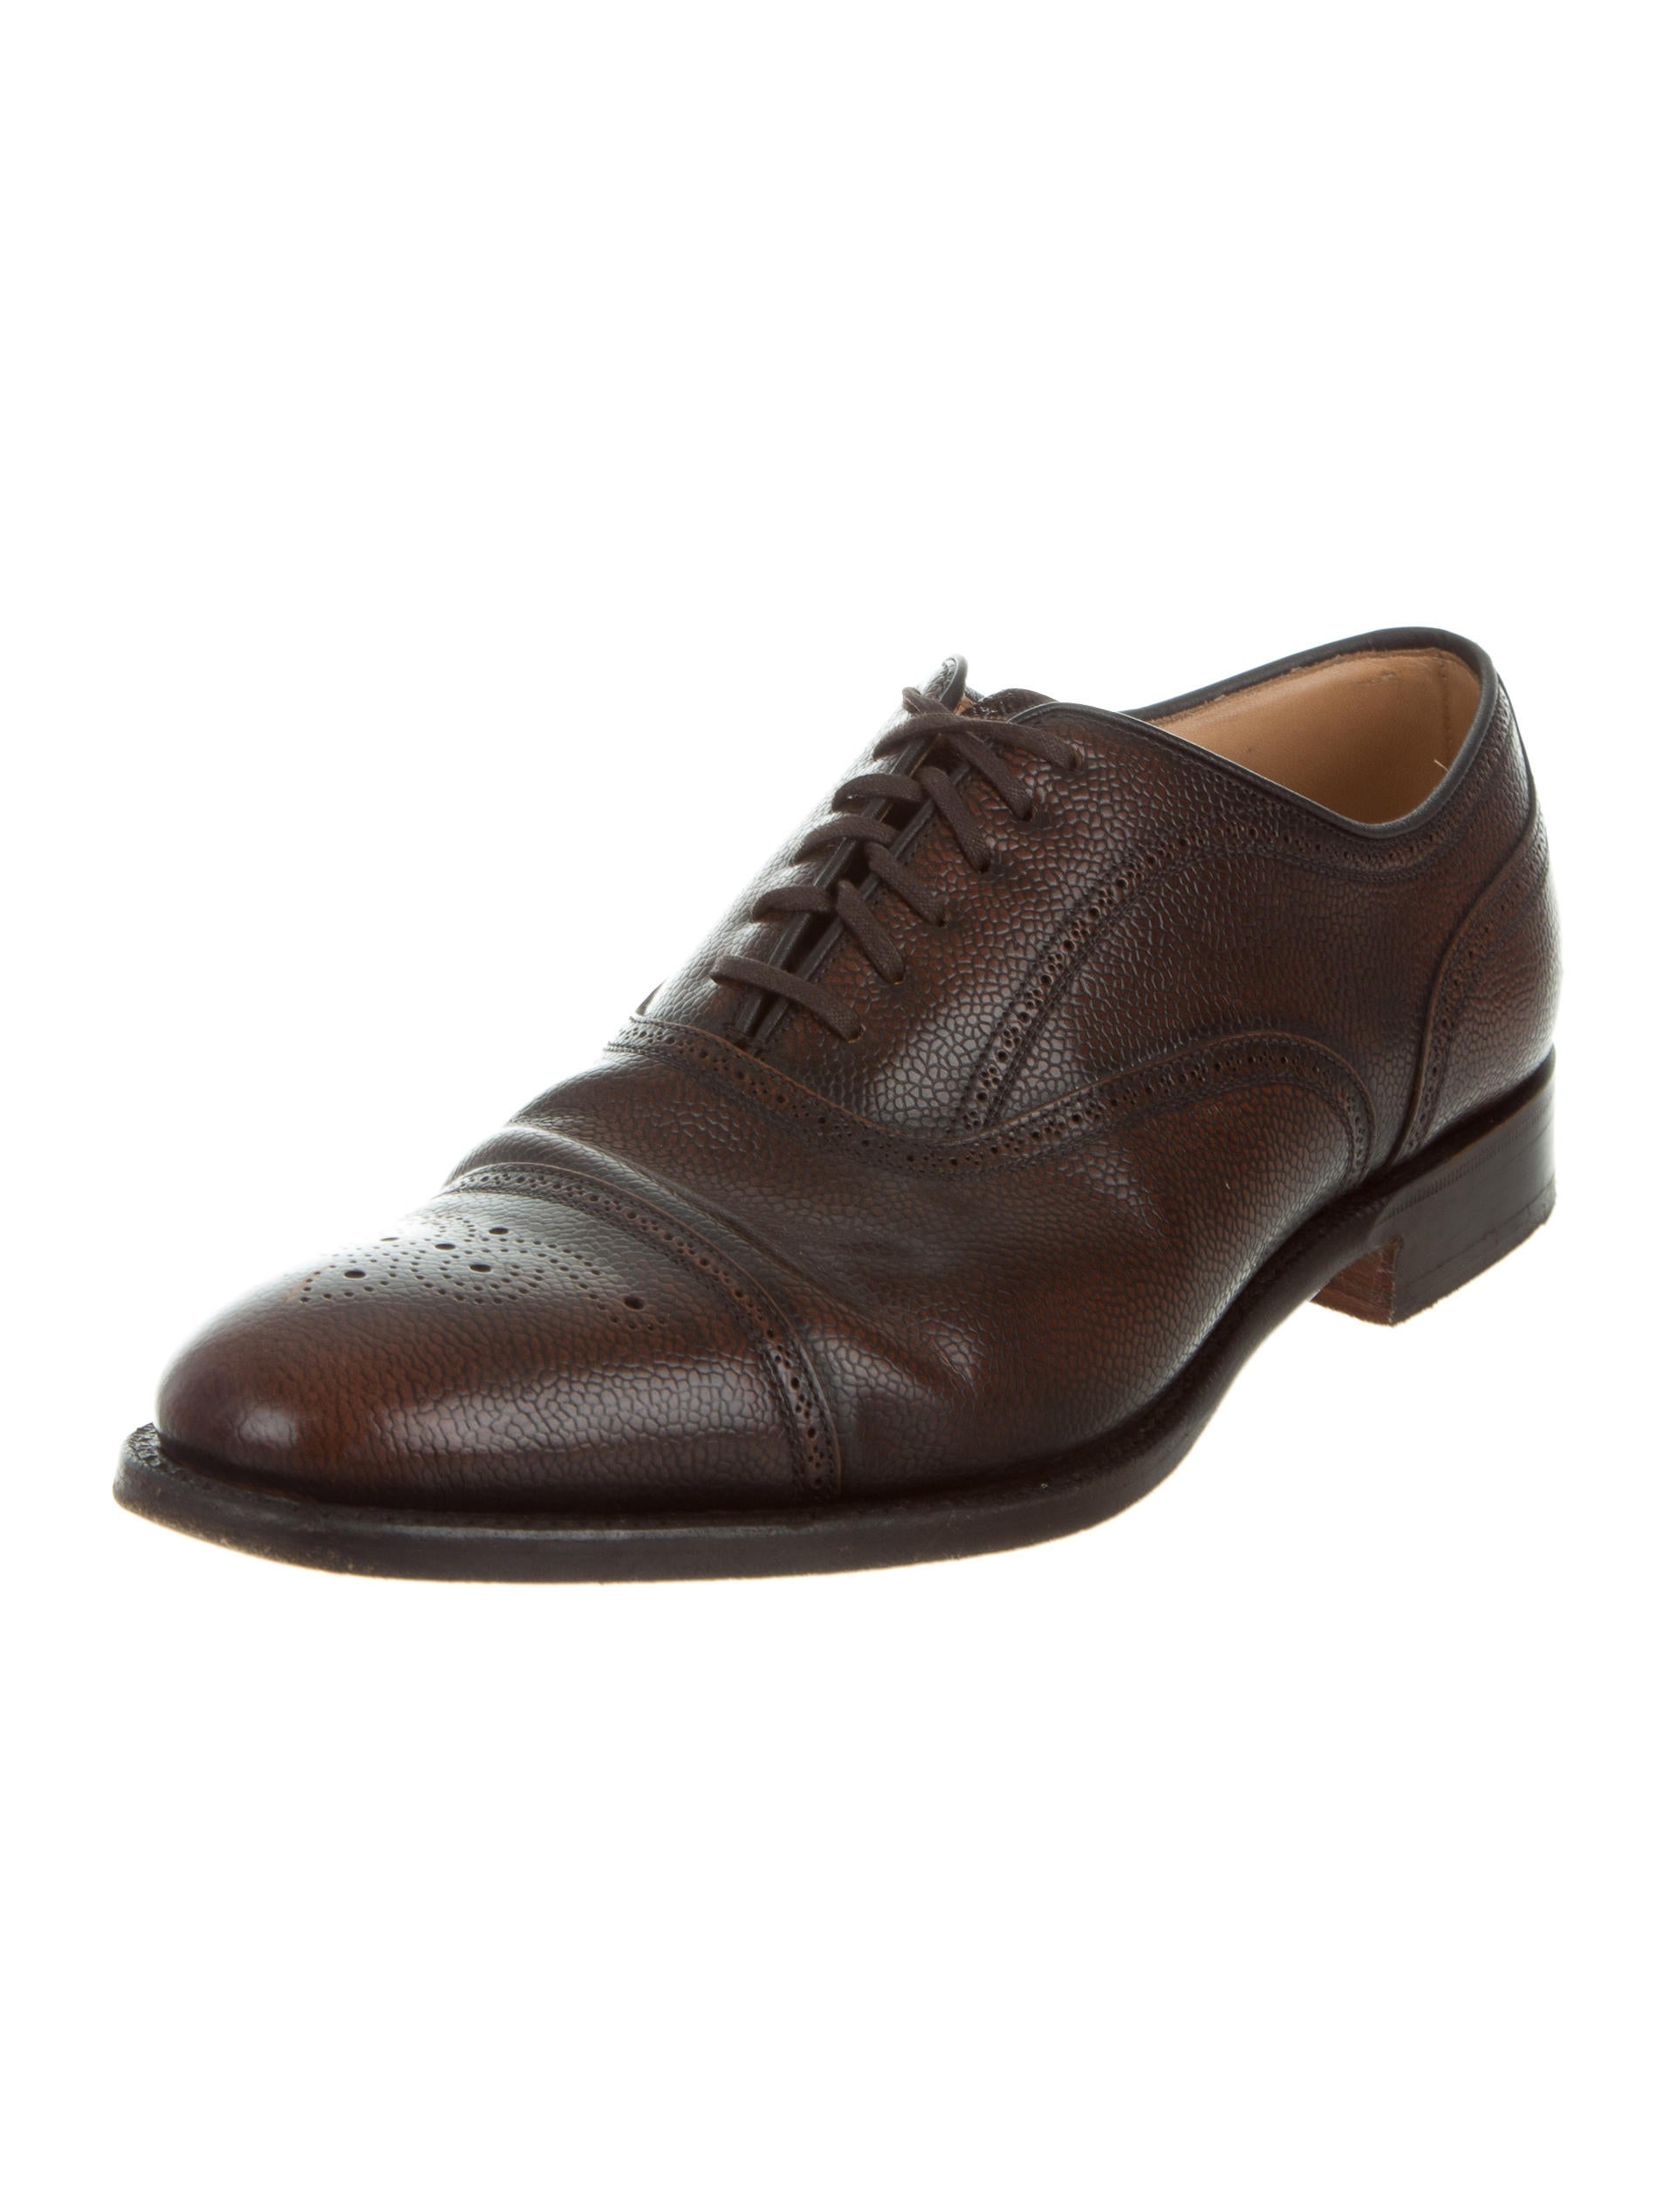 While most brogues are made of boxcalf leather, they are available in suede, scotch grain, and all kinds of other leathers. Ideally you should opt for smooth or at .